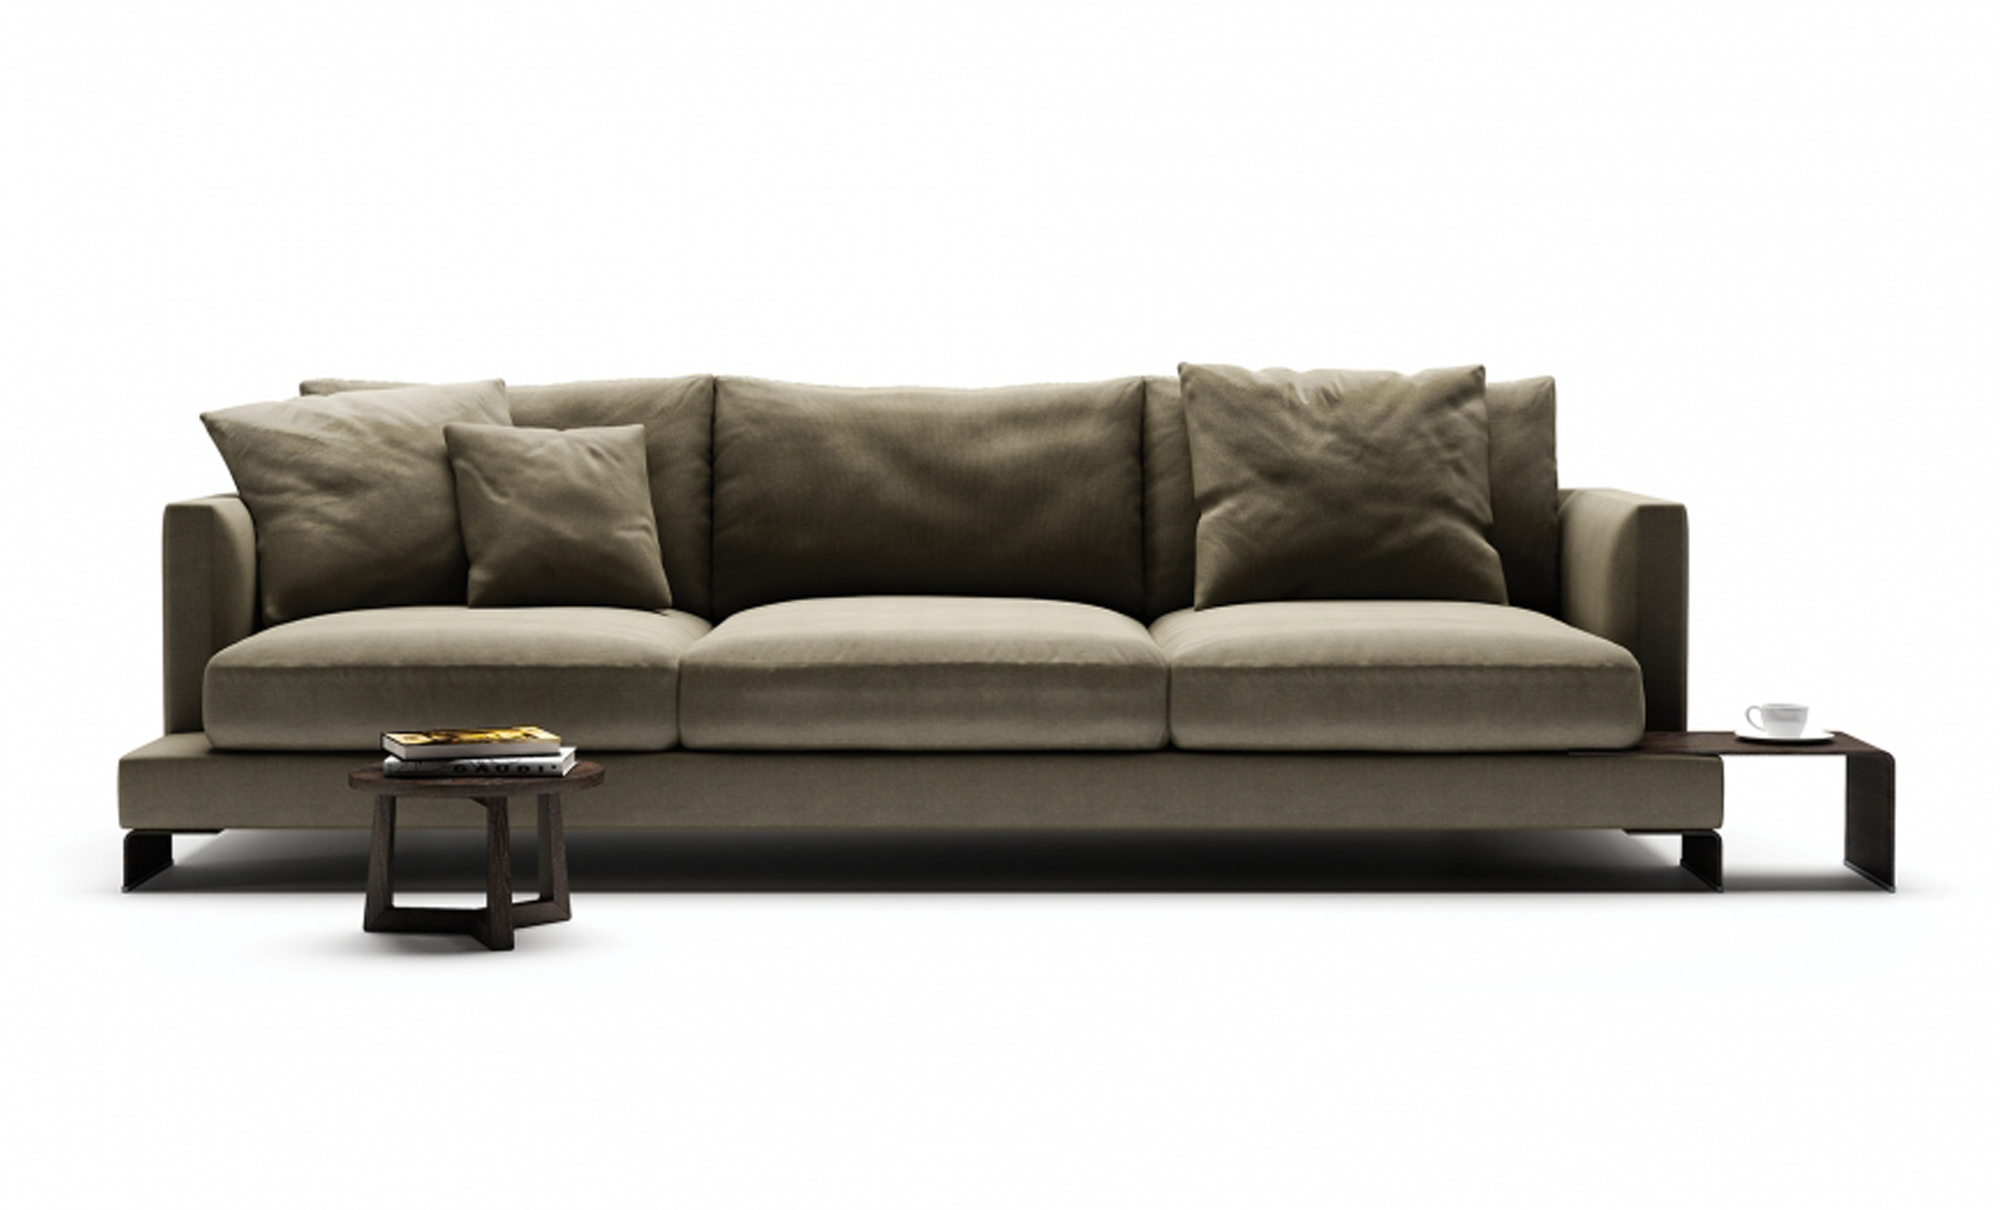 Couches And Sofas Long Island Sofas Fanuli Furniture